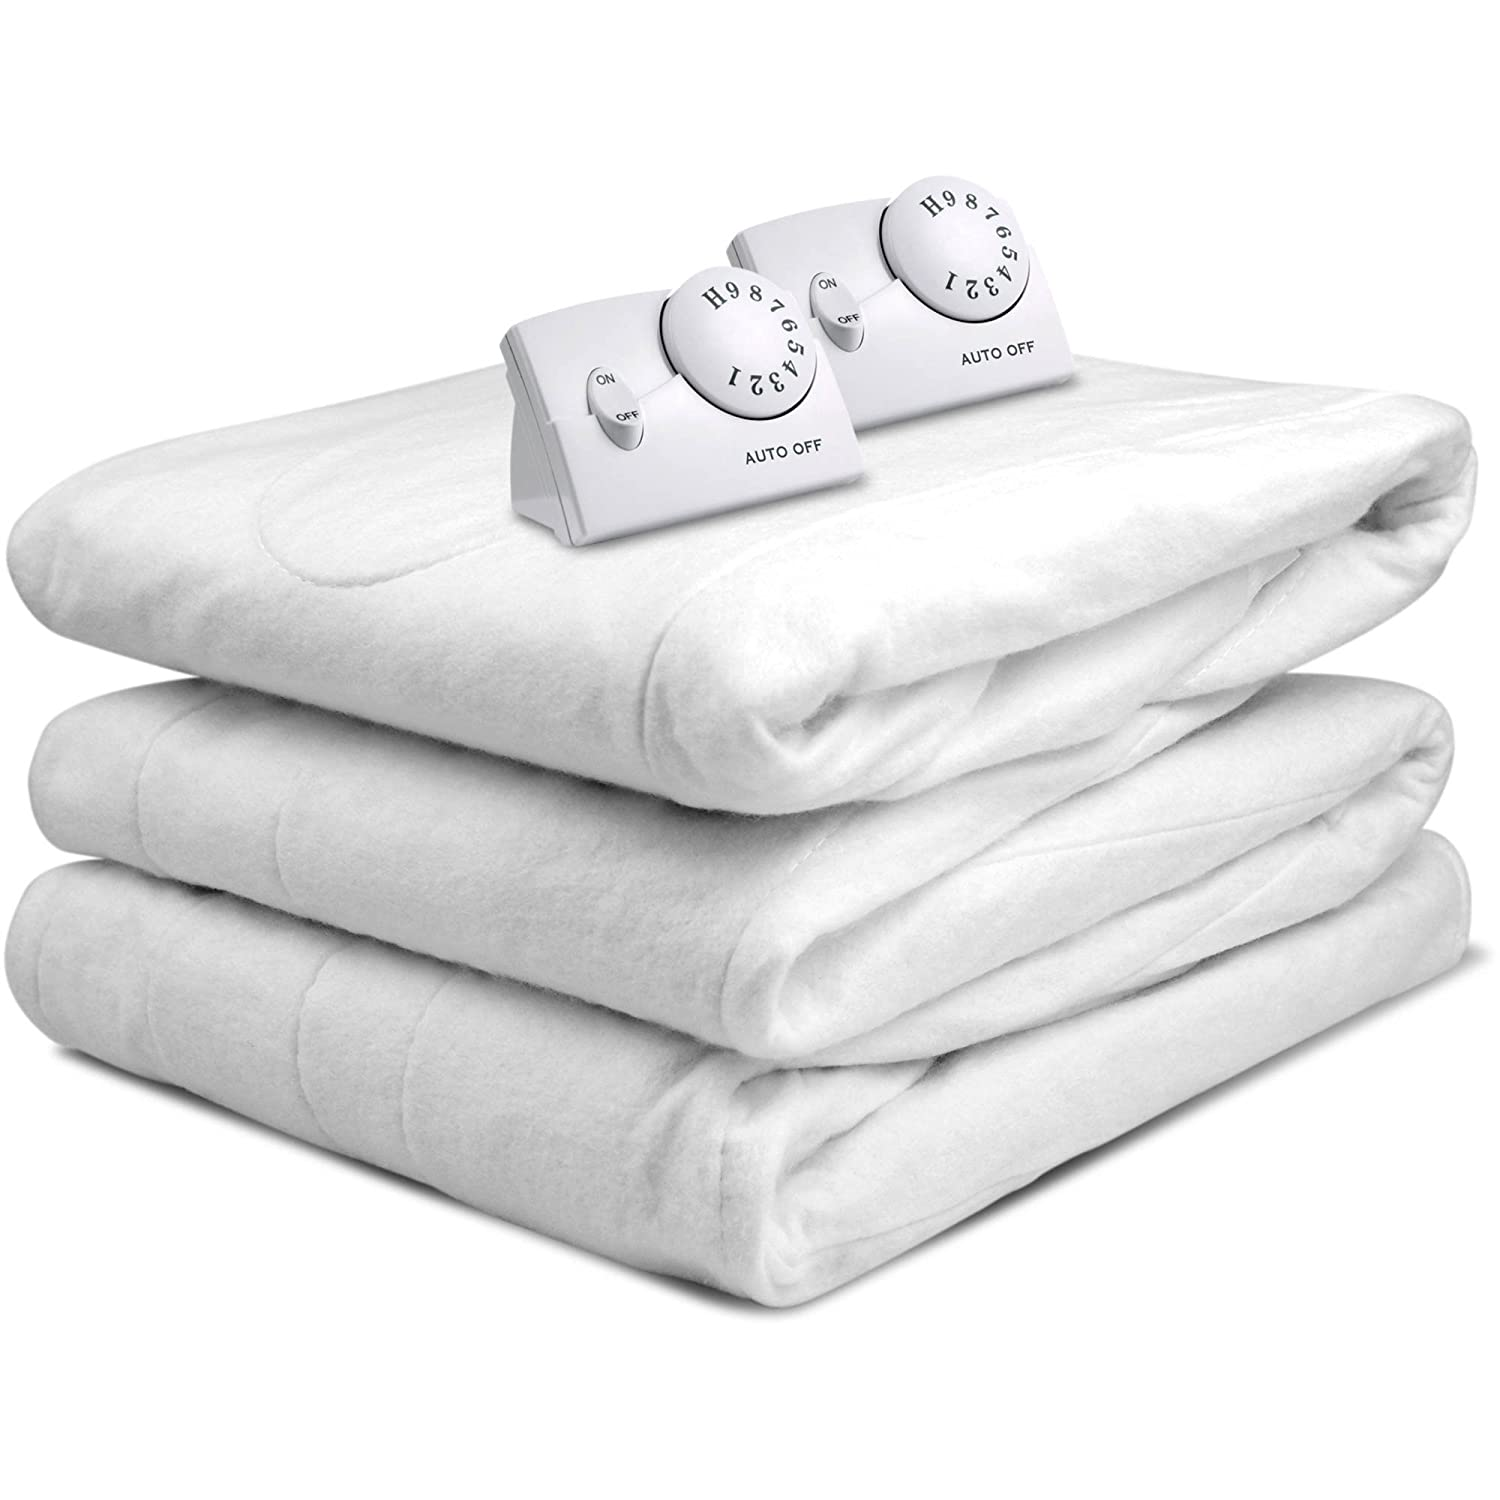 Biddeford 5900 Automatic Electric Heated Mattress Fitted Pad, White (Queen) COMIN18JU064189